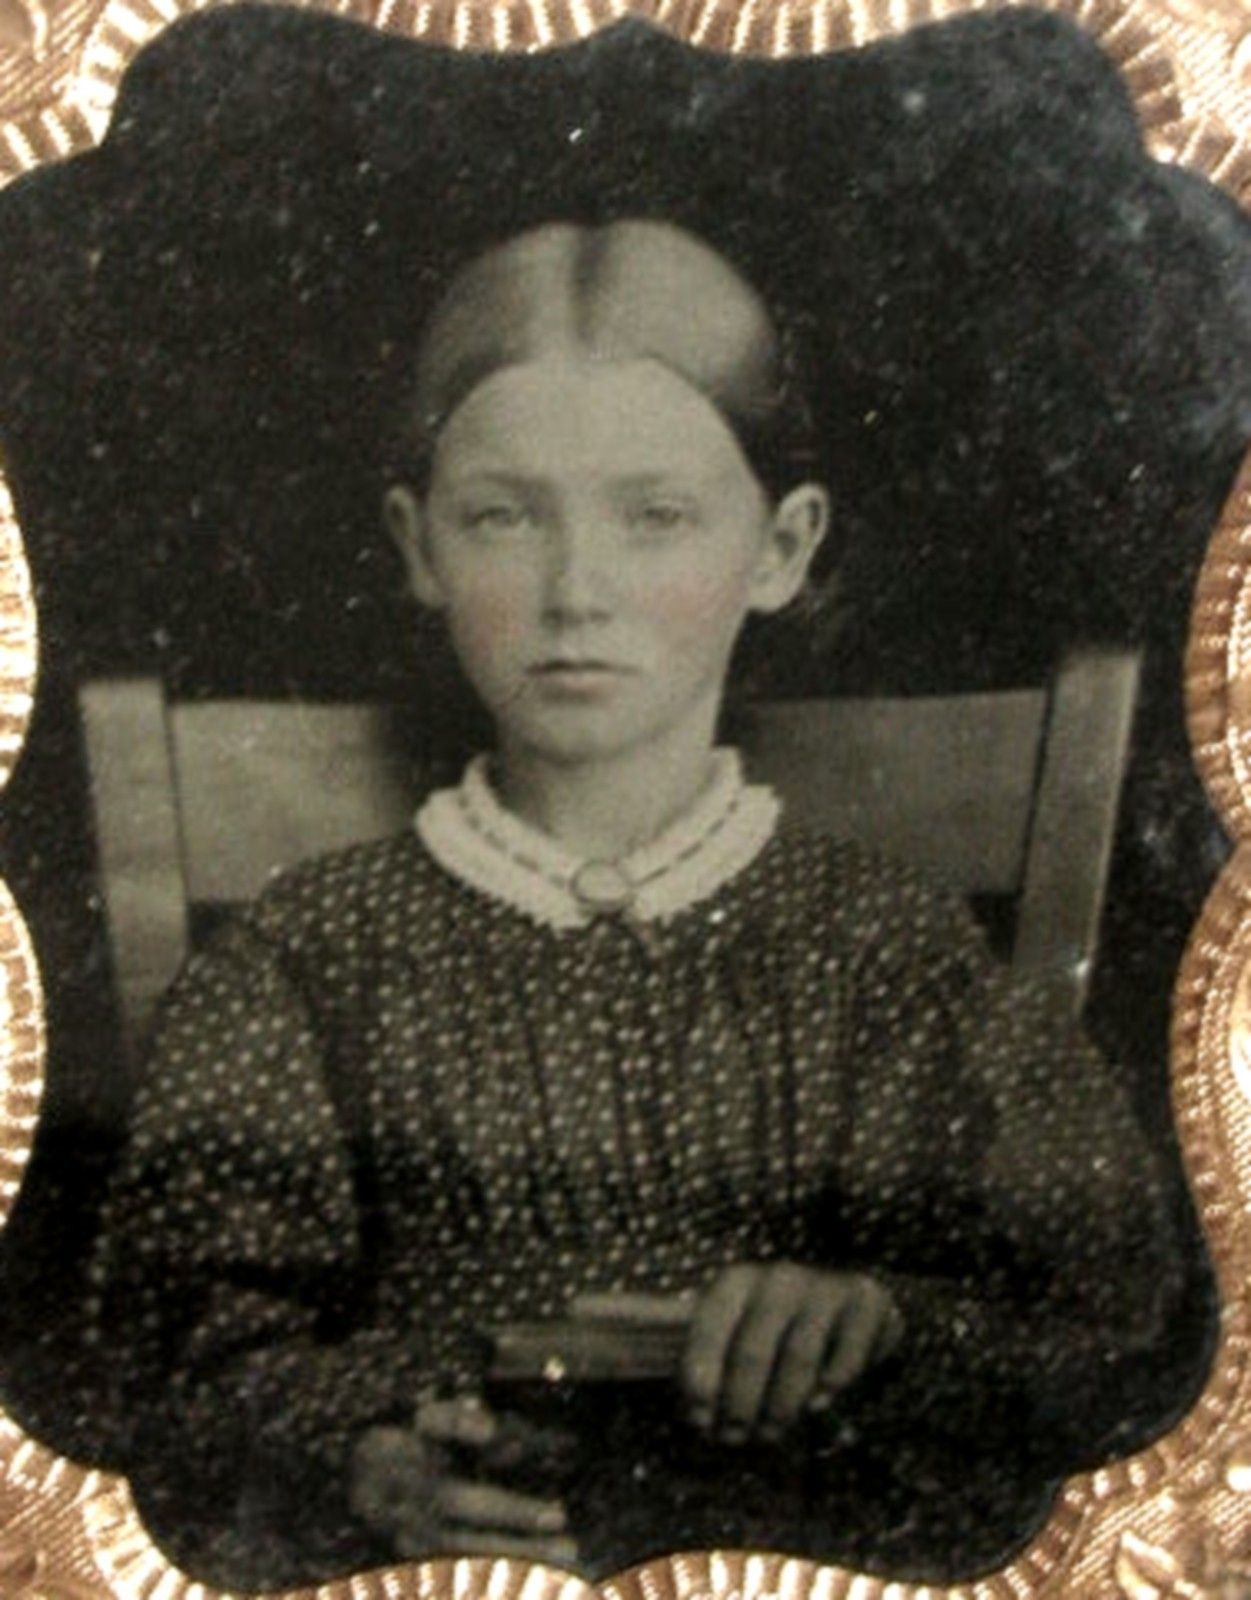 Dating ambrotypes for sale 6